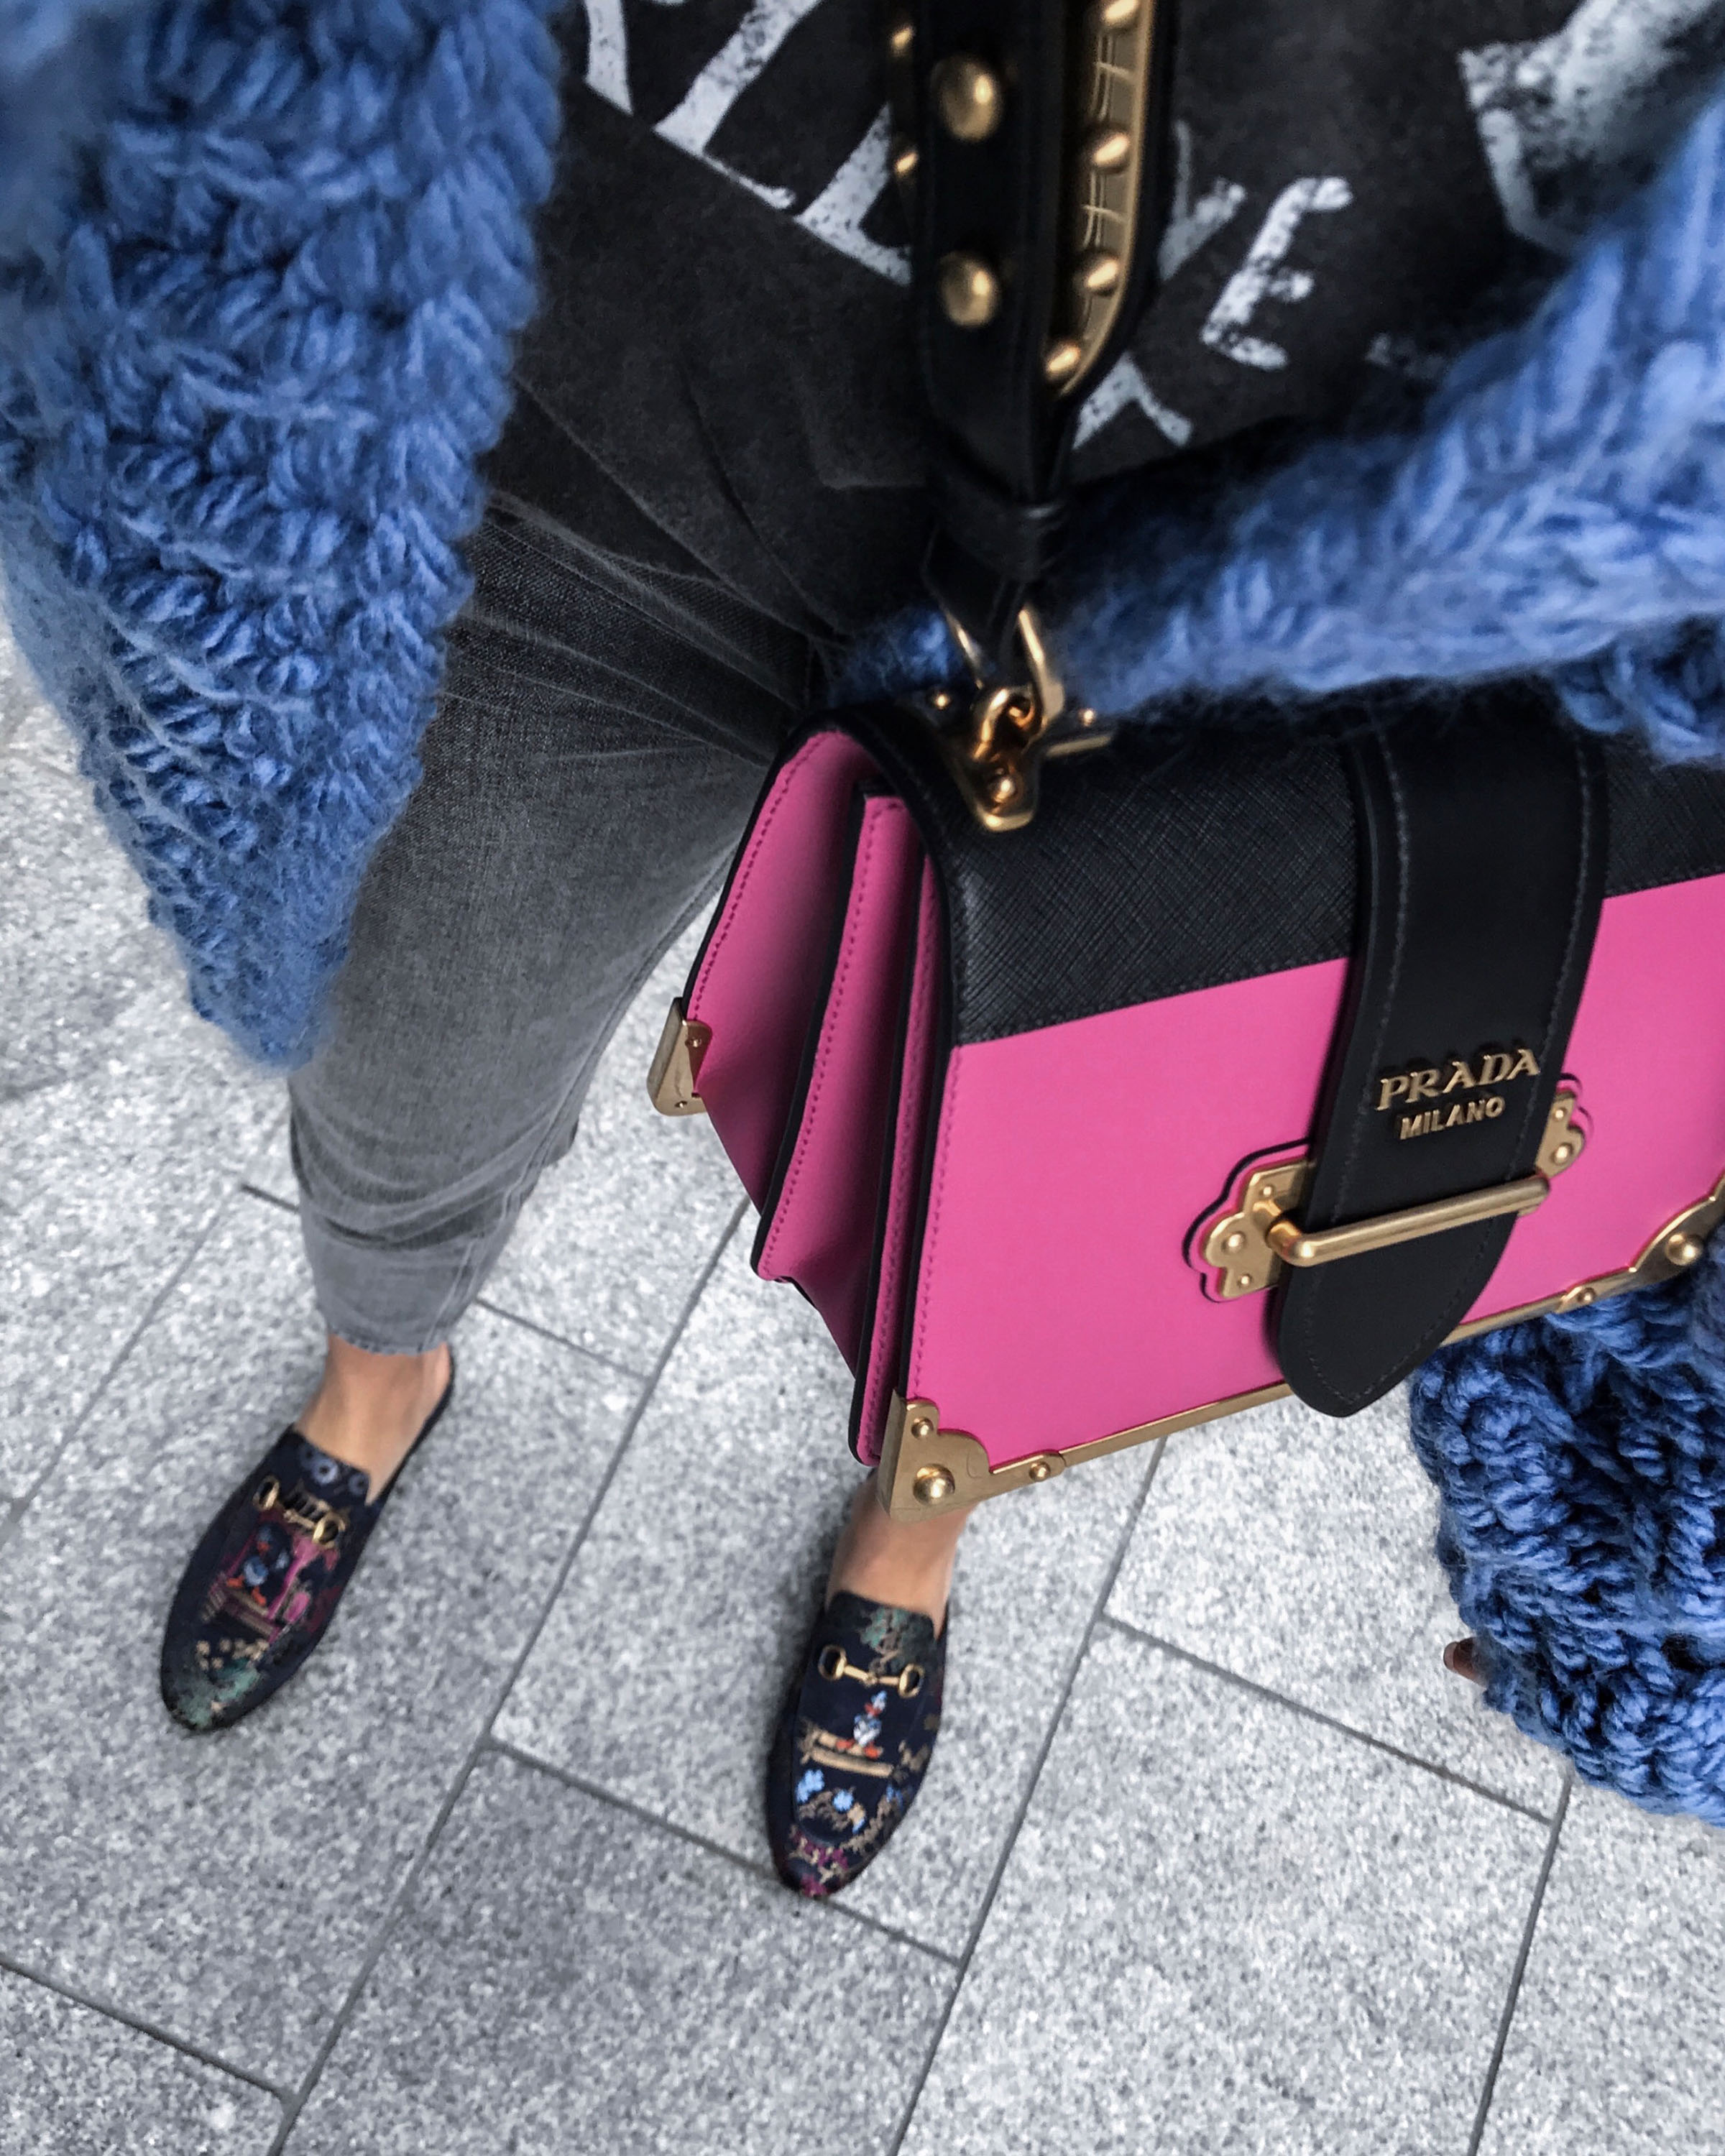 prada_cahier_Bag_pink_black_1